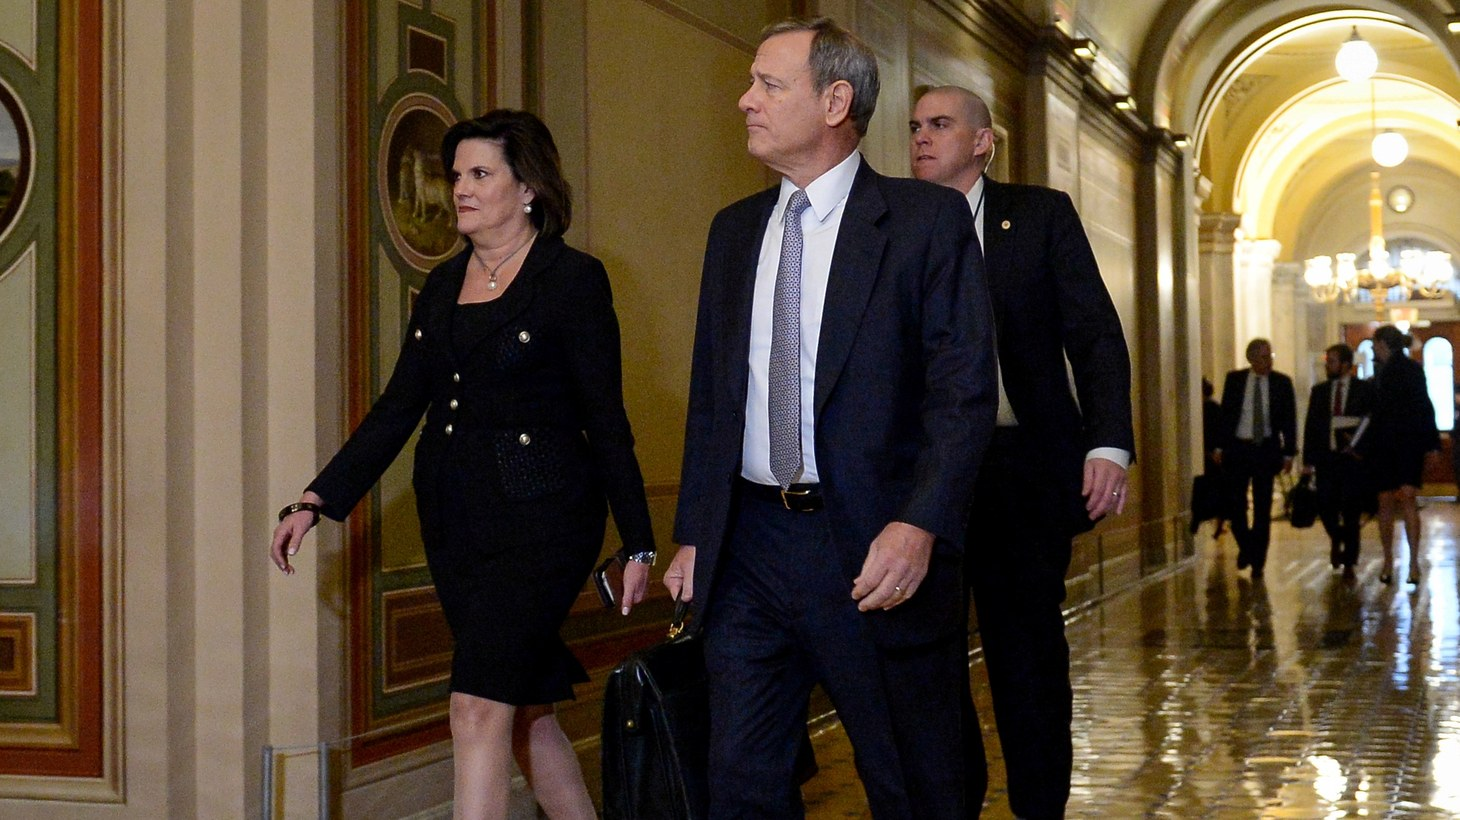 U.S. Supreme Court Chief Justice John Roberts arrives at the U.S. Capitol before the start of the day's Senate impeachment trial of President Donald Trump in Washington, U.S., January 30, 2020.